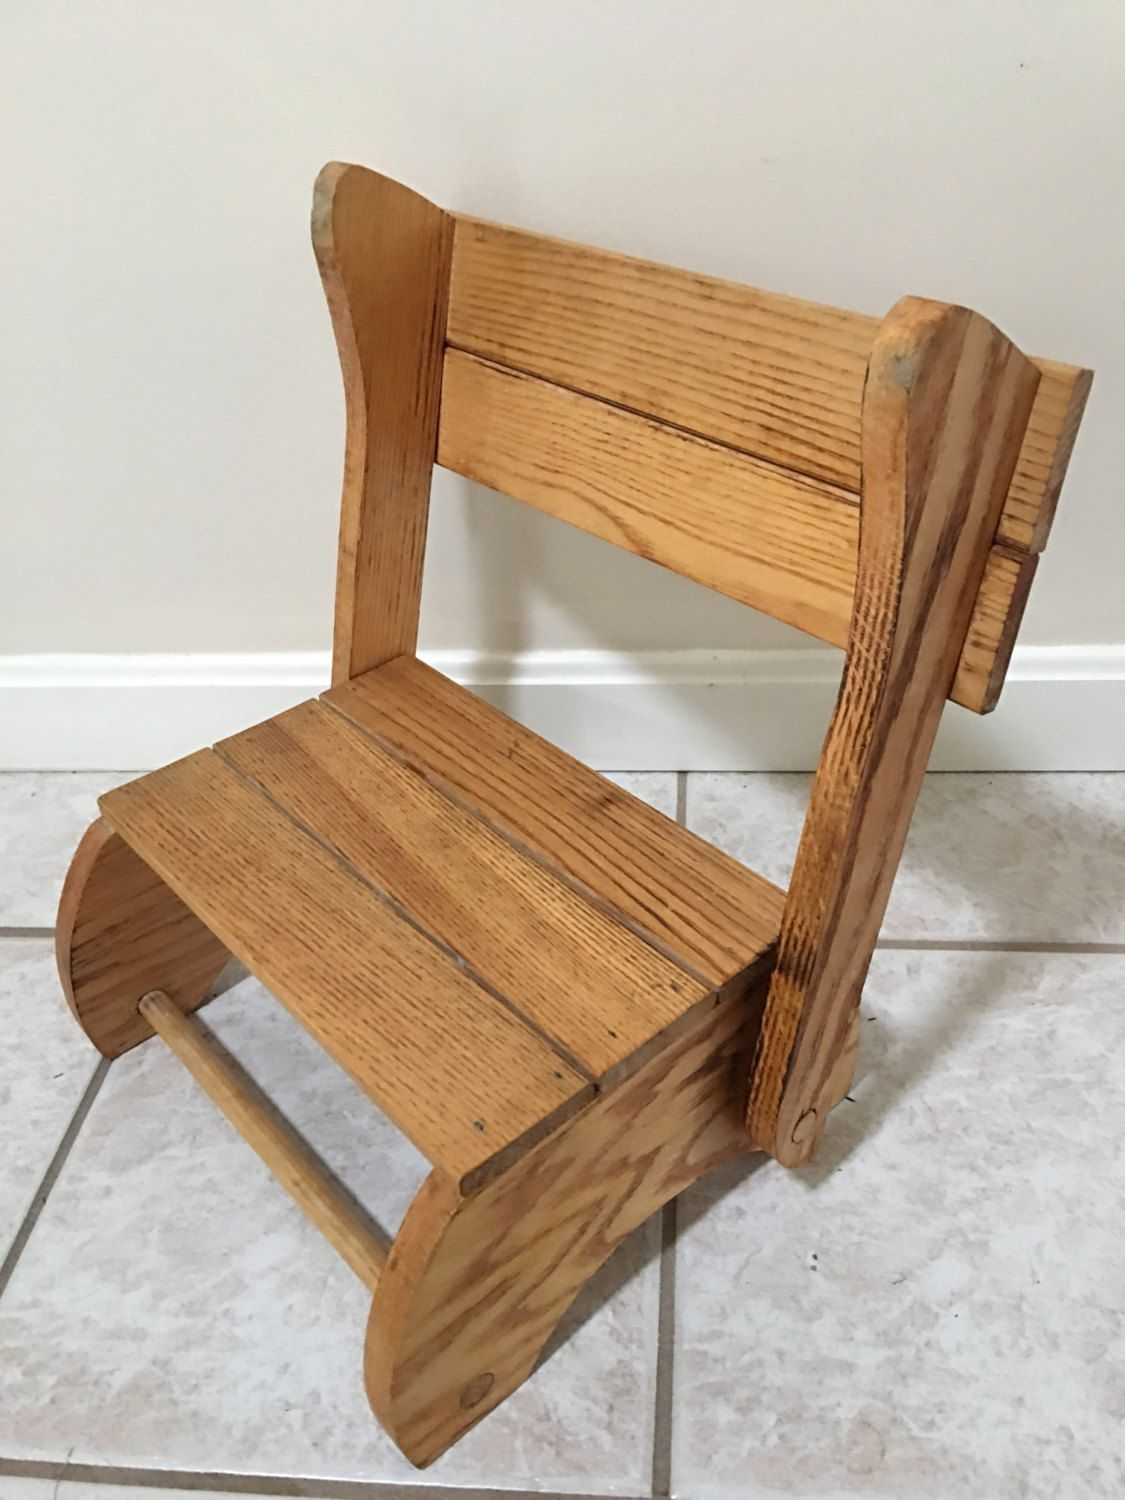 Vintage Wood Childu0027s Step Stool   Portable, Convertible, Folding Chair  Bench By Littlejoesattic On